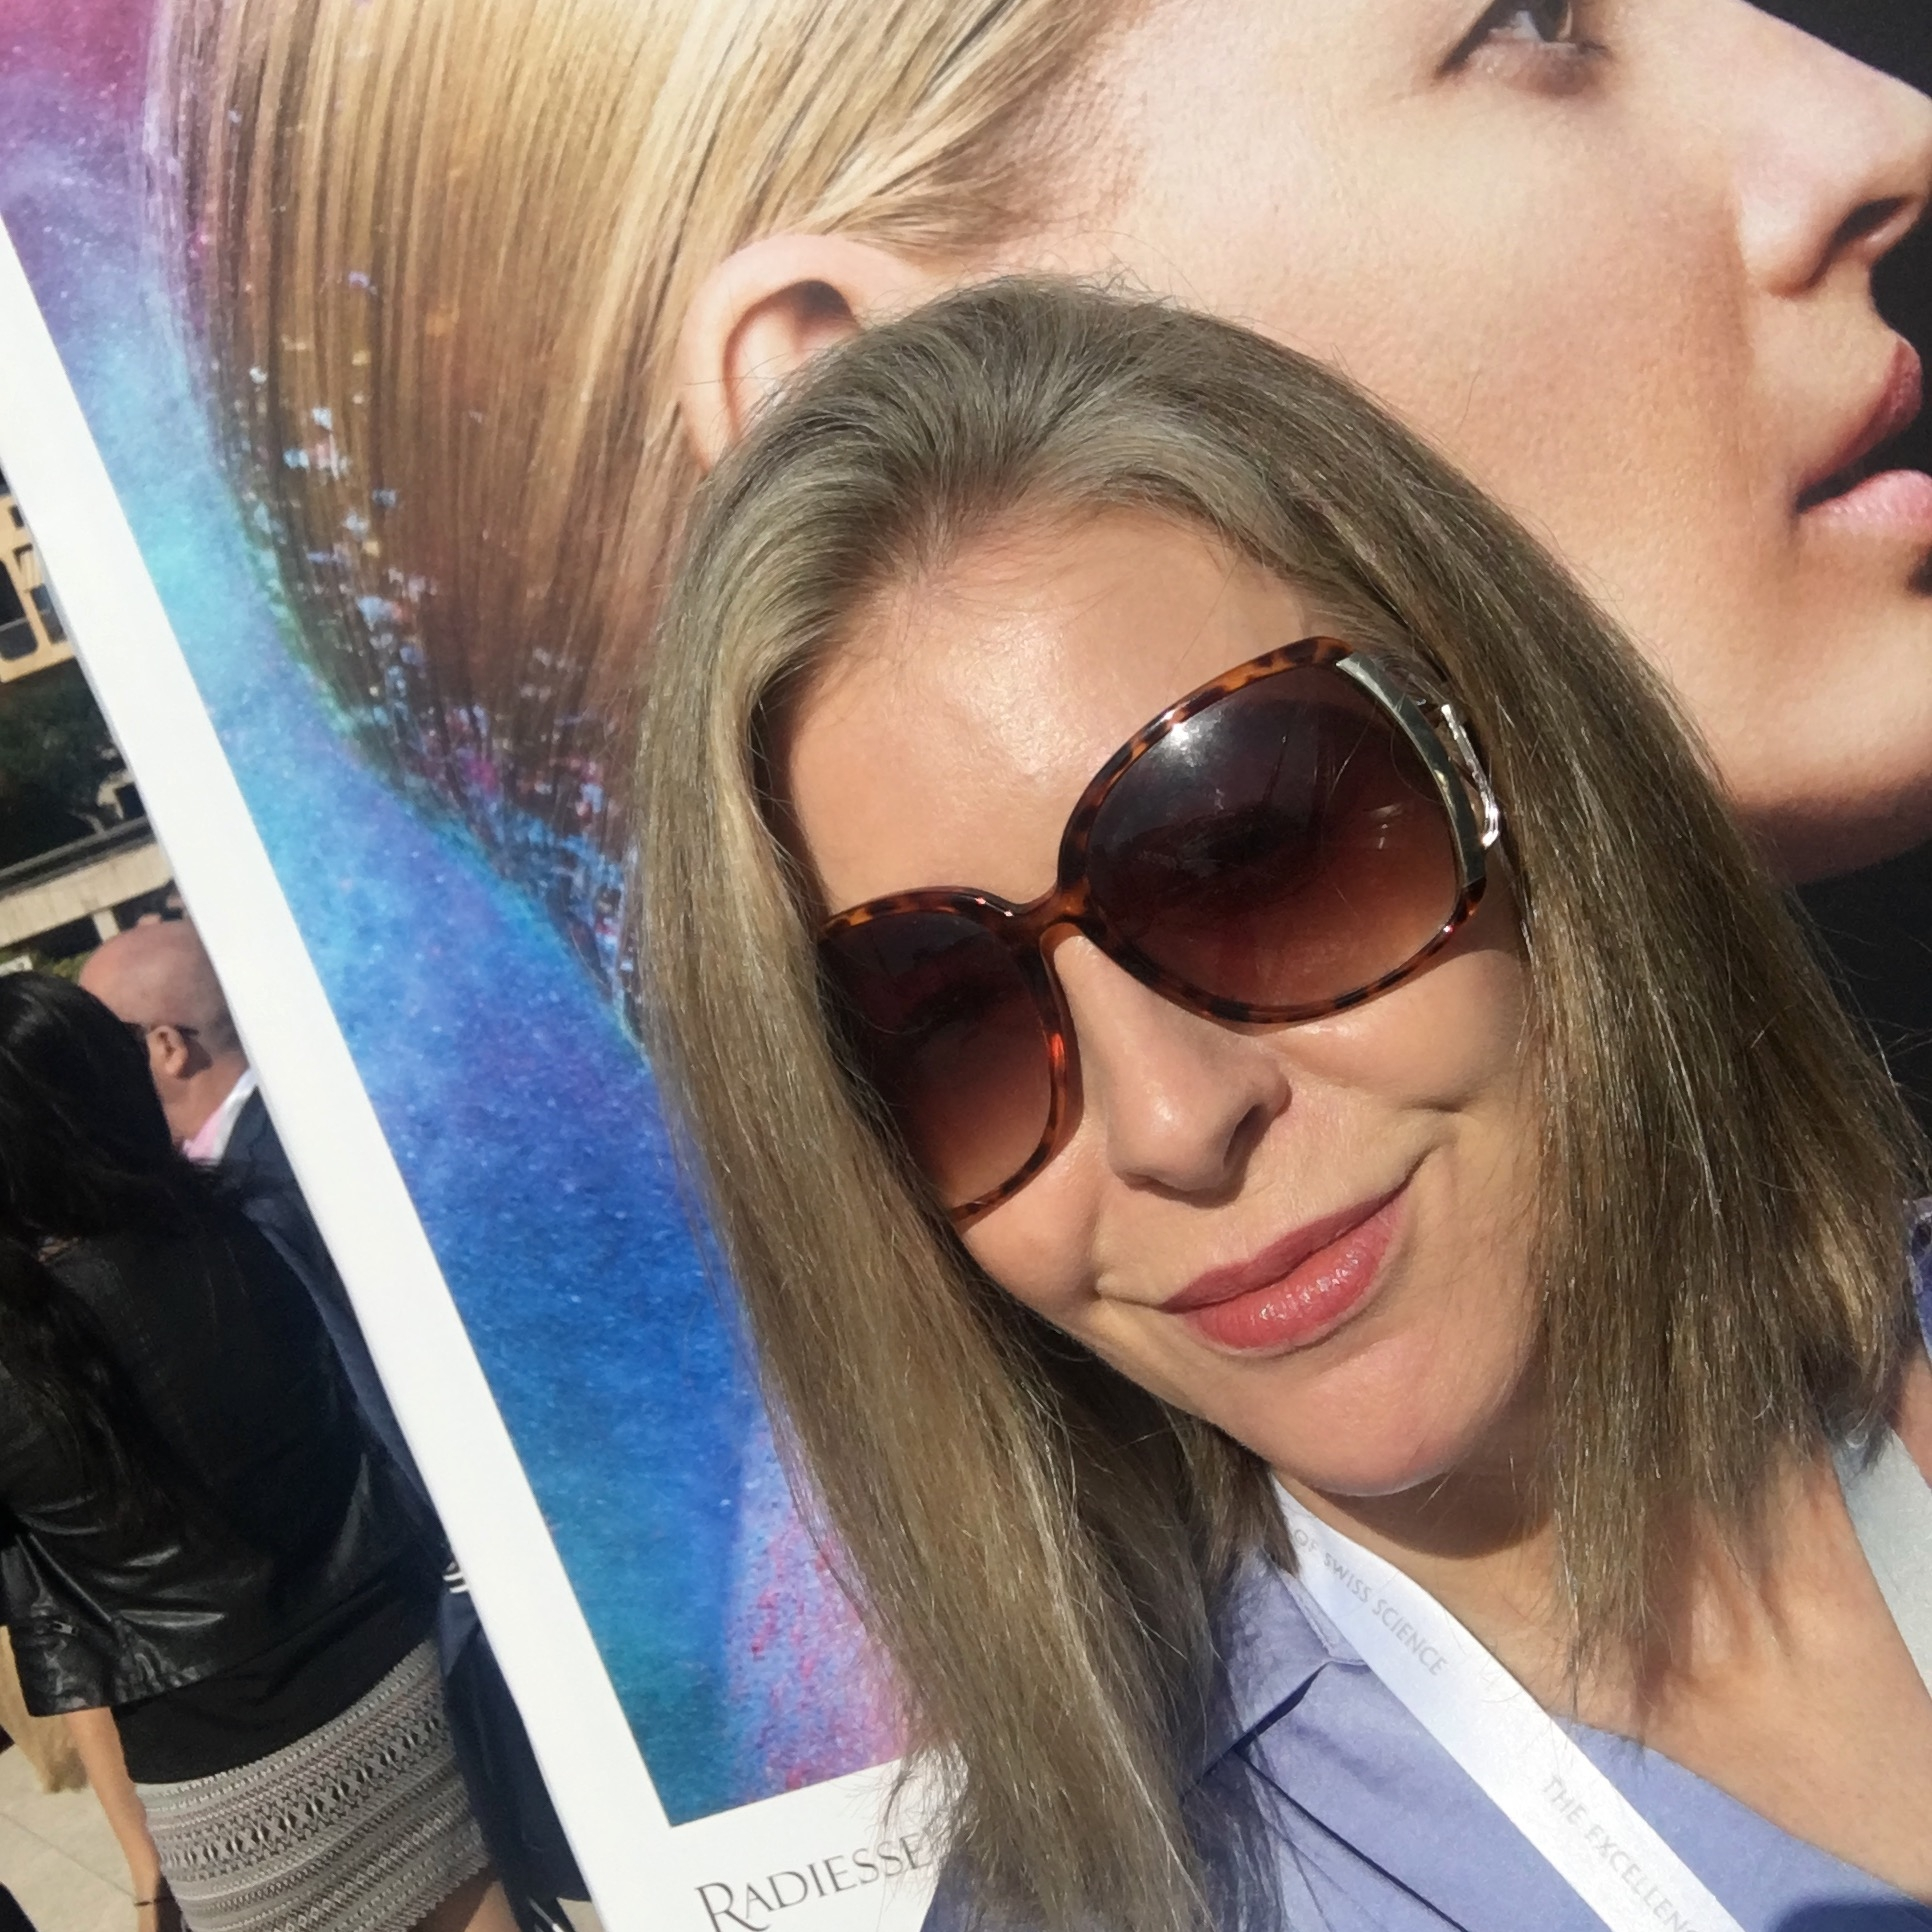 Snooping at faces from behind my sunnies: AMWC 2018